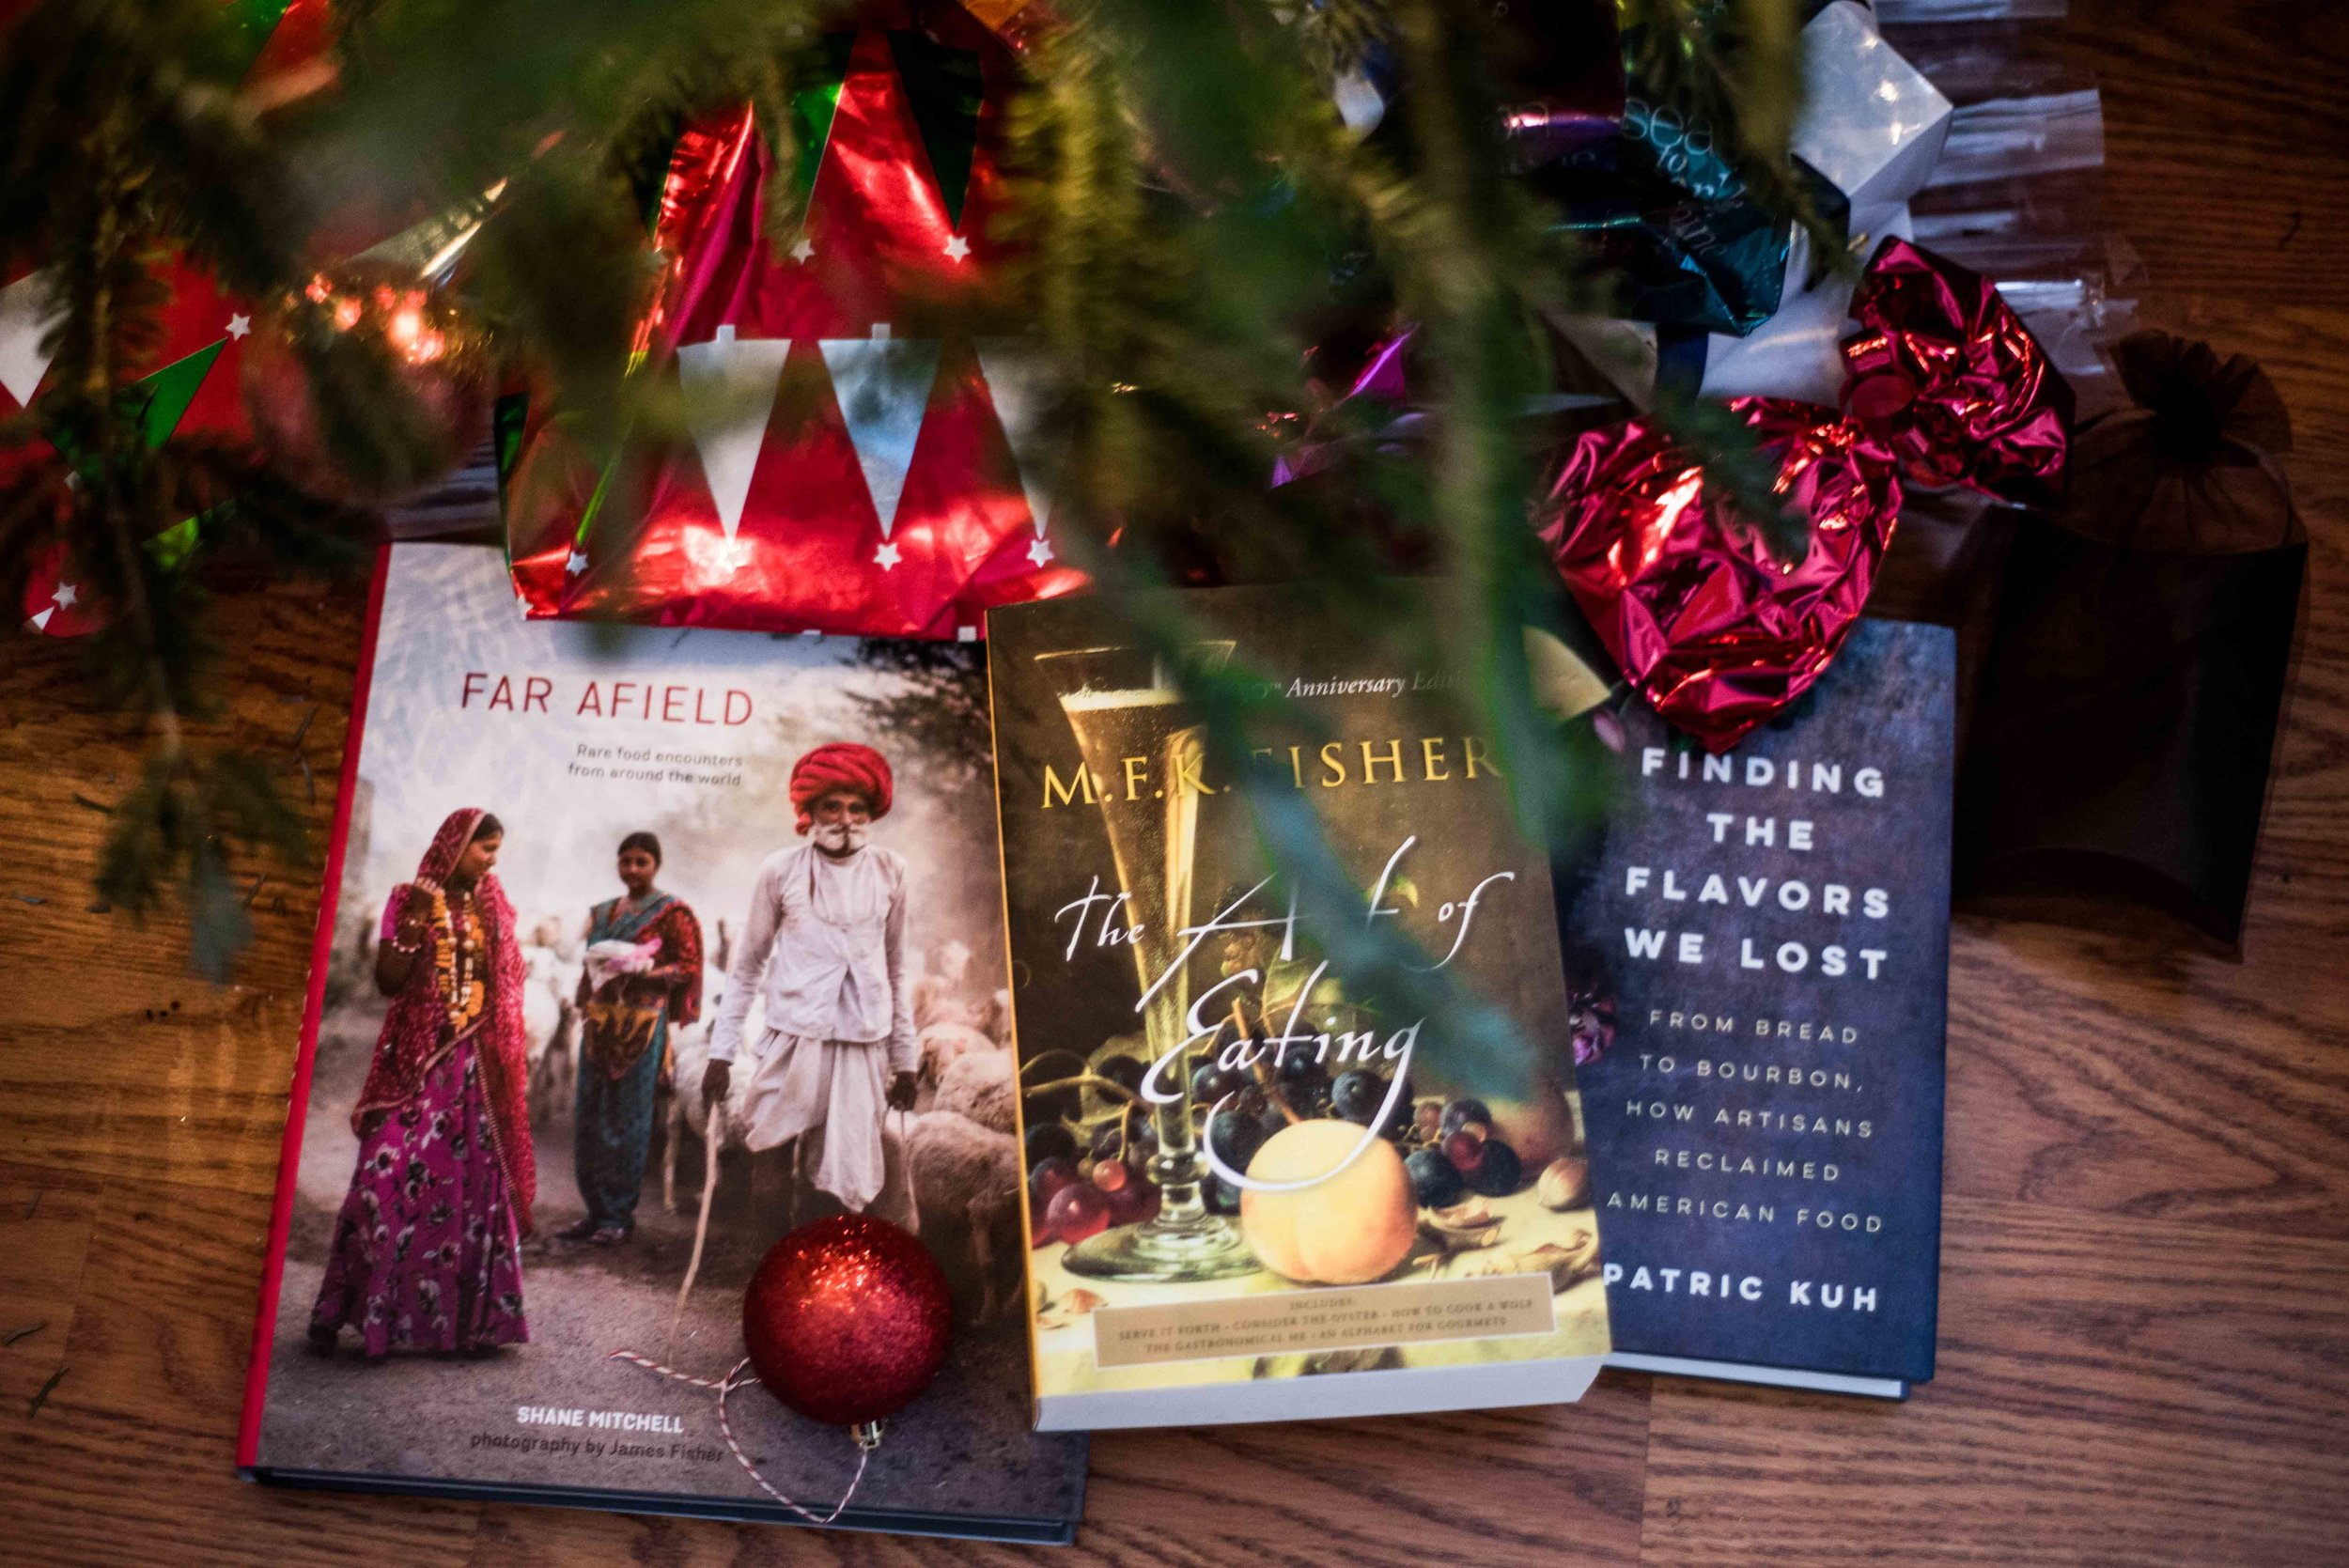 This Christmas is all about books. I gifted myself many and receive some amazing ones as gifts!! Looking forward to curling up with them this week...!